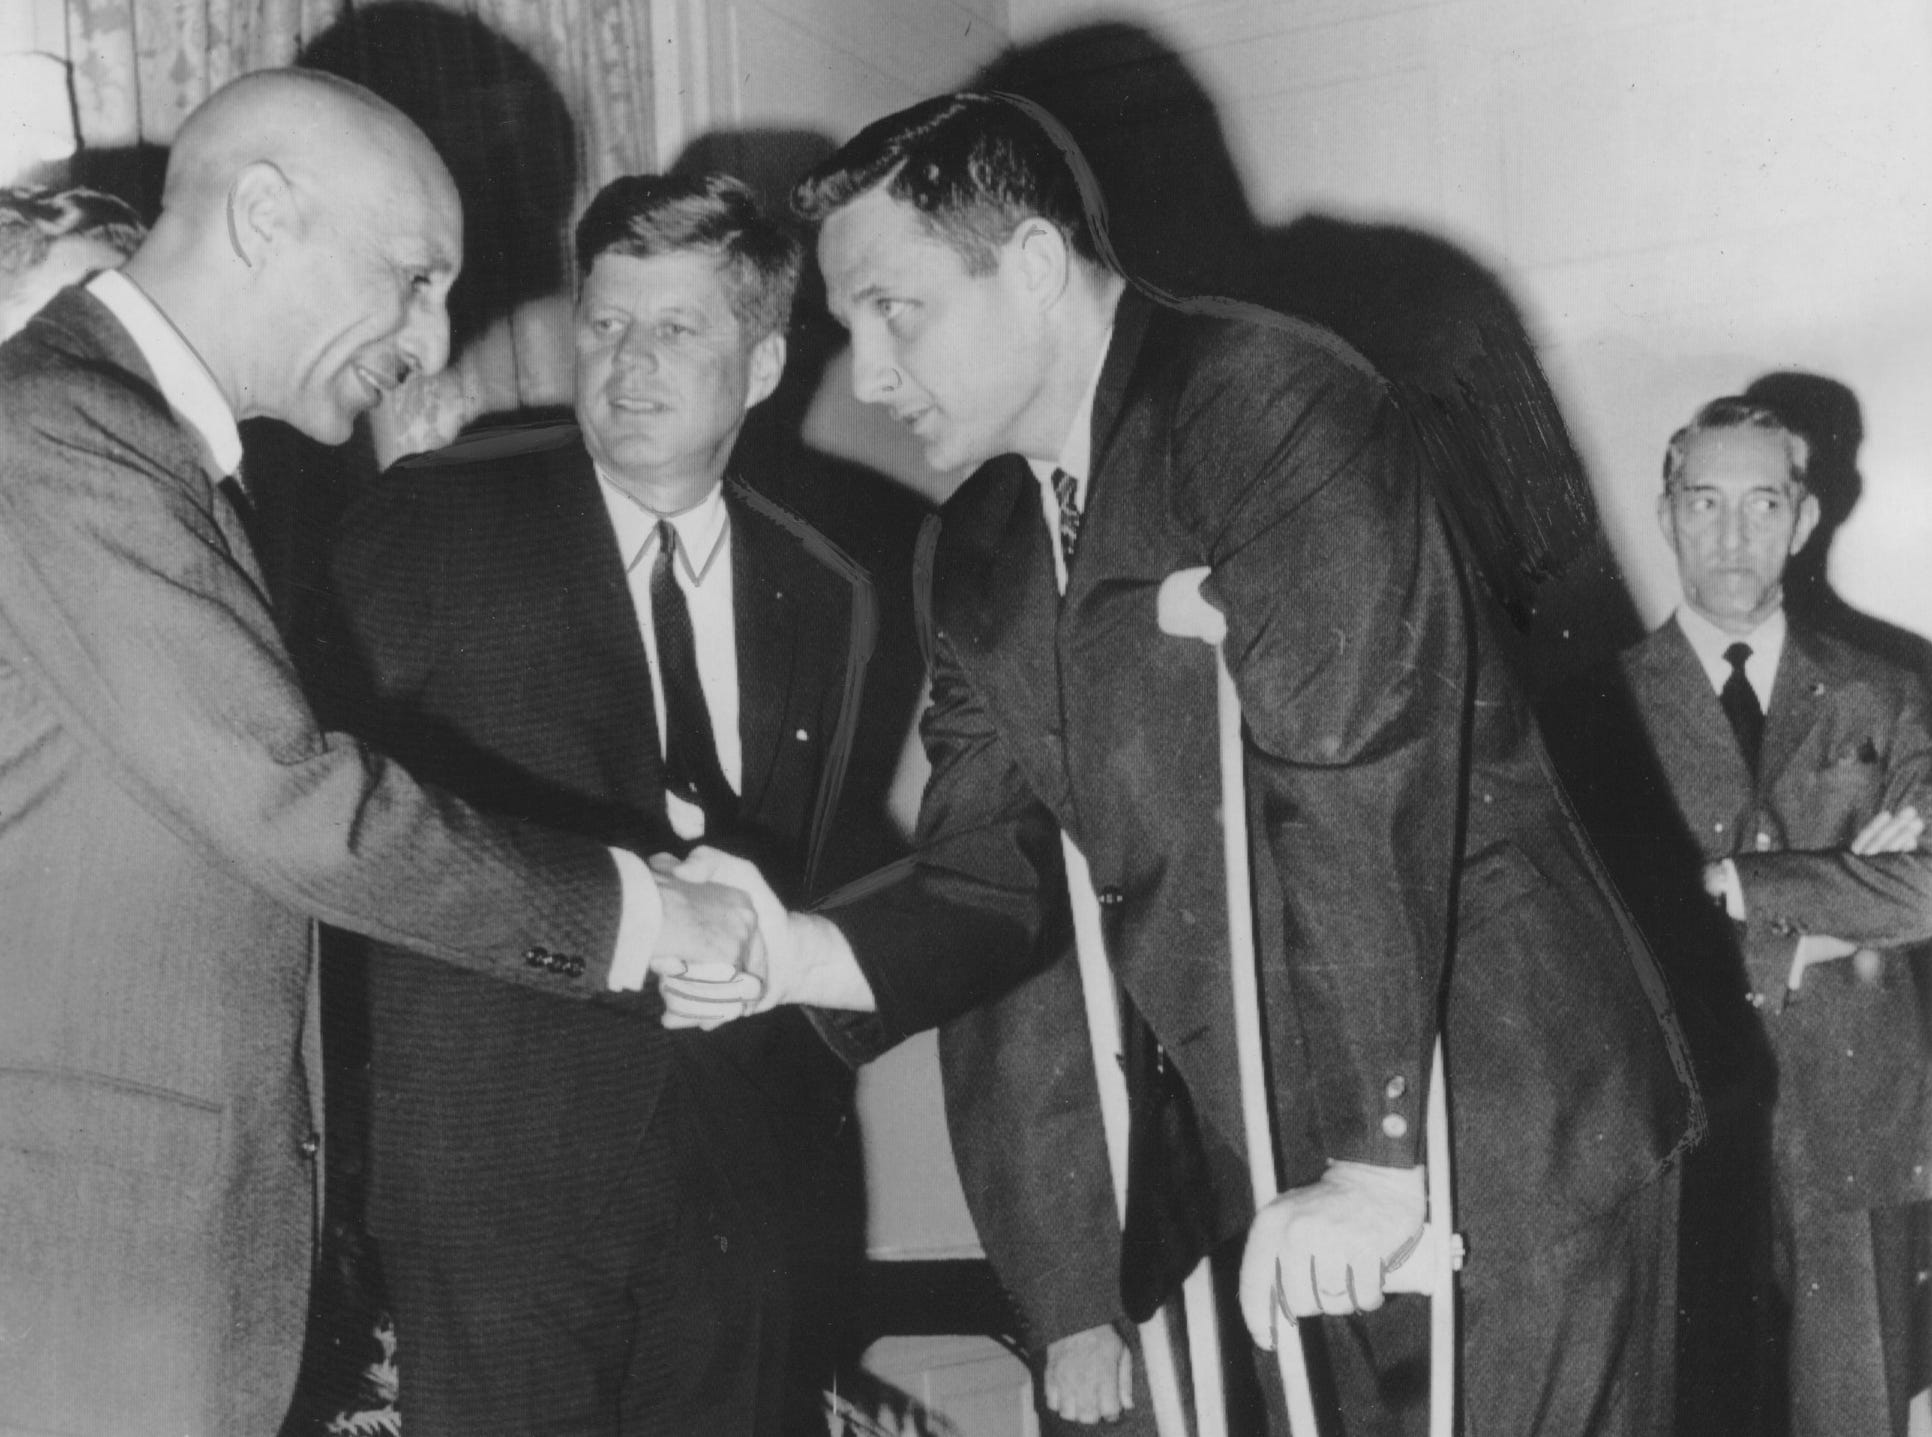 King Mohammed Zahir Shah of Afghanistan, shaking hands with Senator Birch Bayh (D-Ind.) at a luncheon yesterday at the Afghanistan Embassy in Washington. President John F. Kennedy, honor guest at the affair, stands next to the visiting monarch. Senator Bayh has been getting around on crutches because of an amputated toe which was mangled in a lawn mower accident. (09/07/1963)